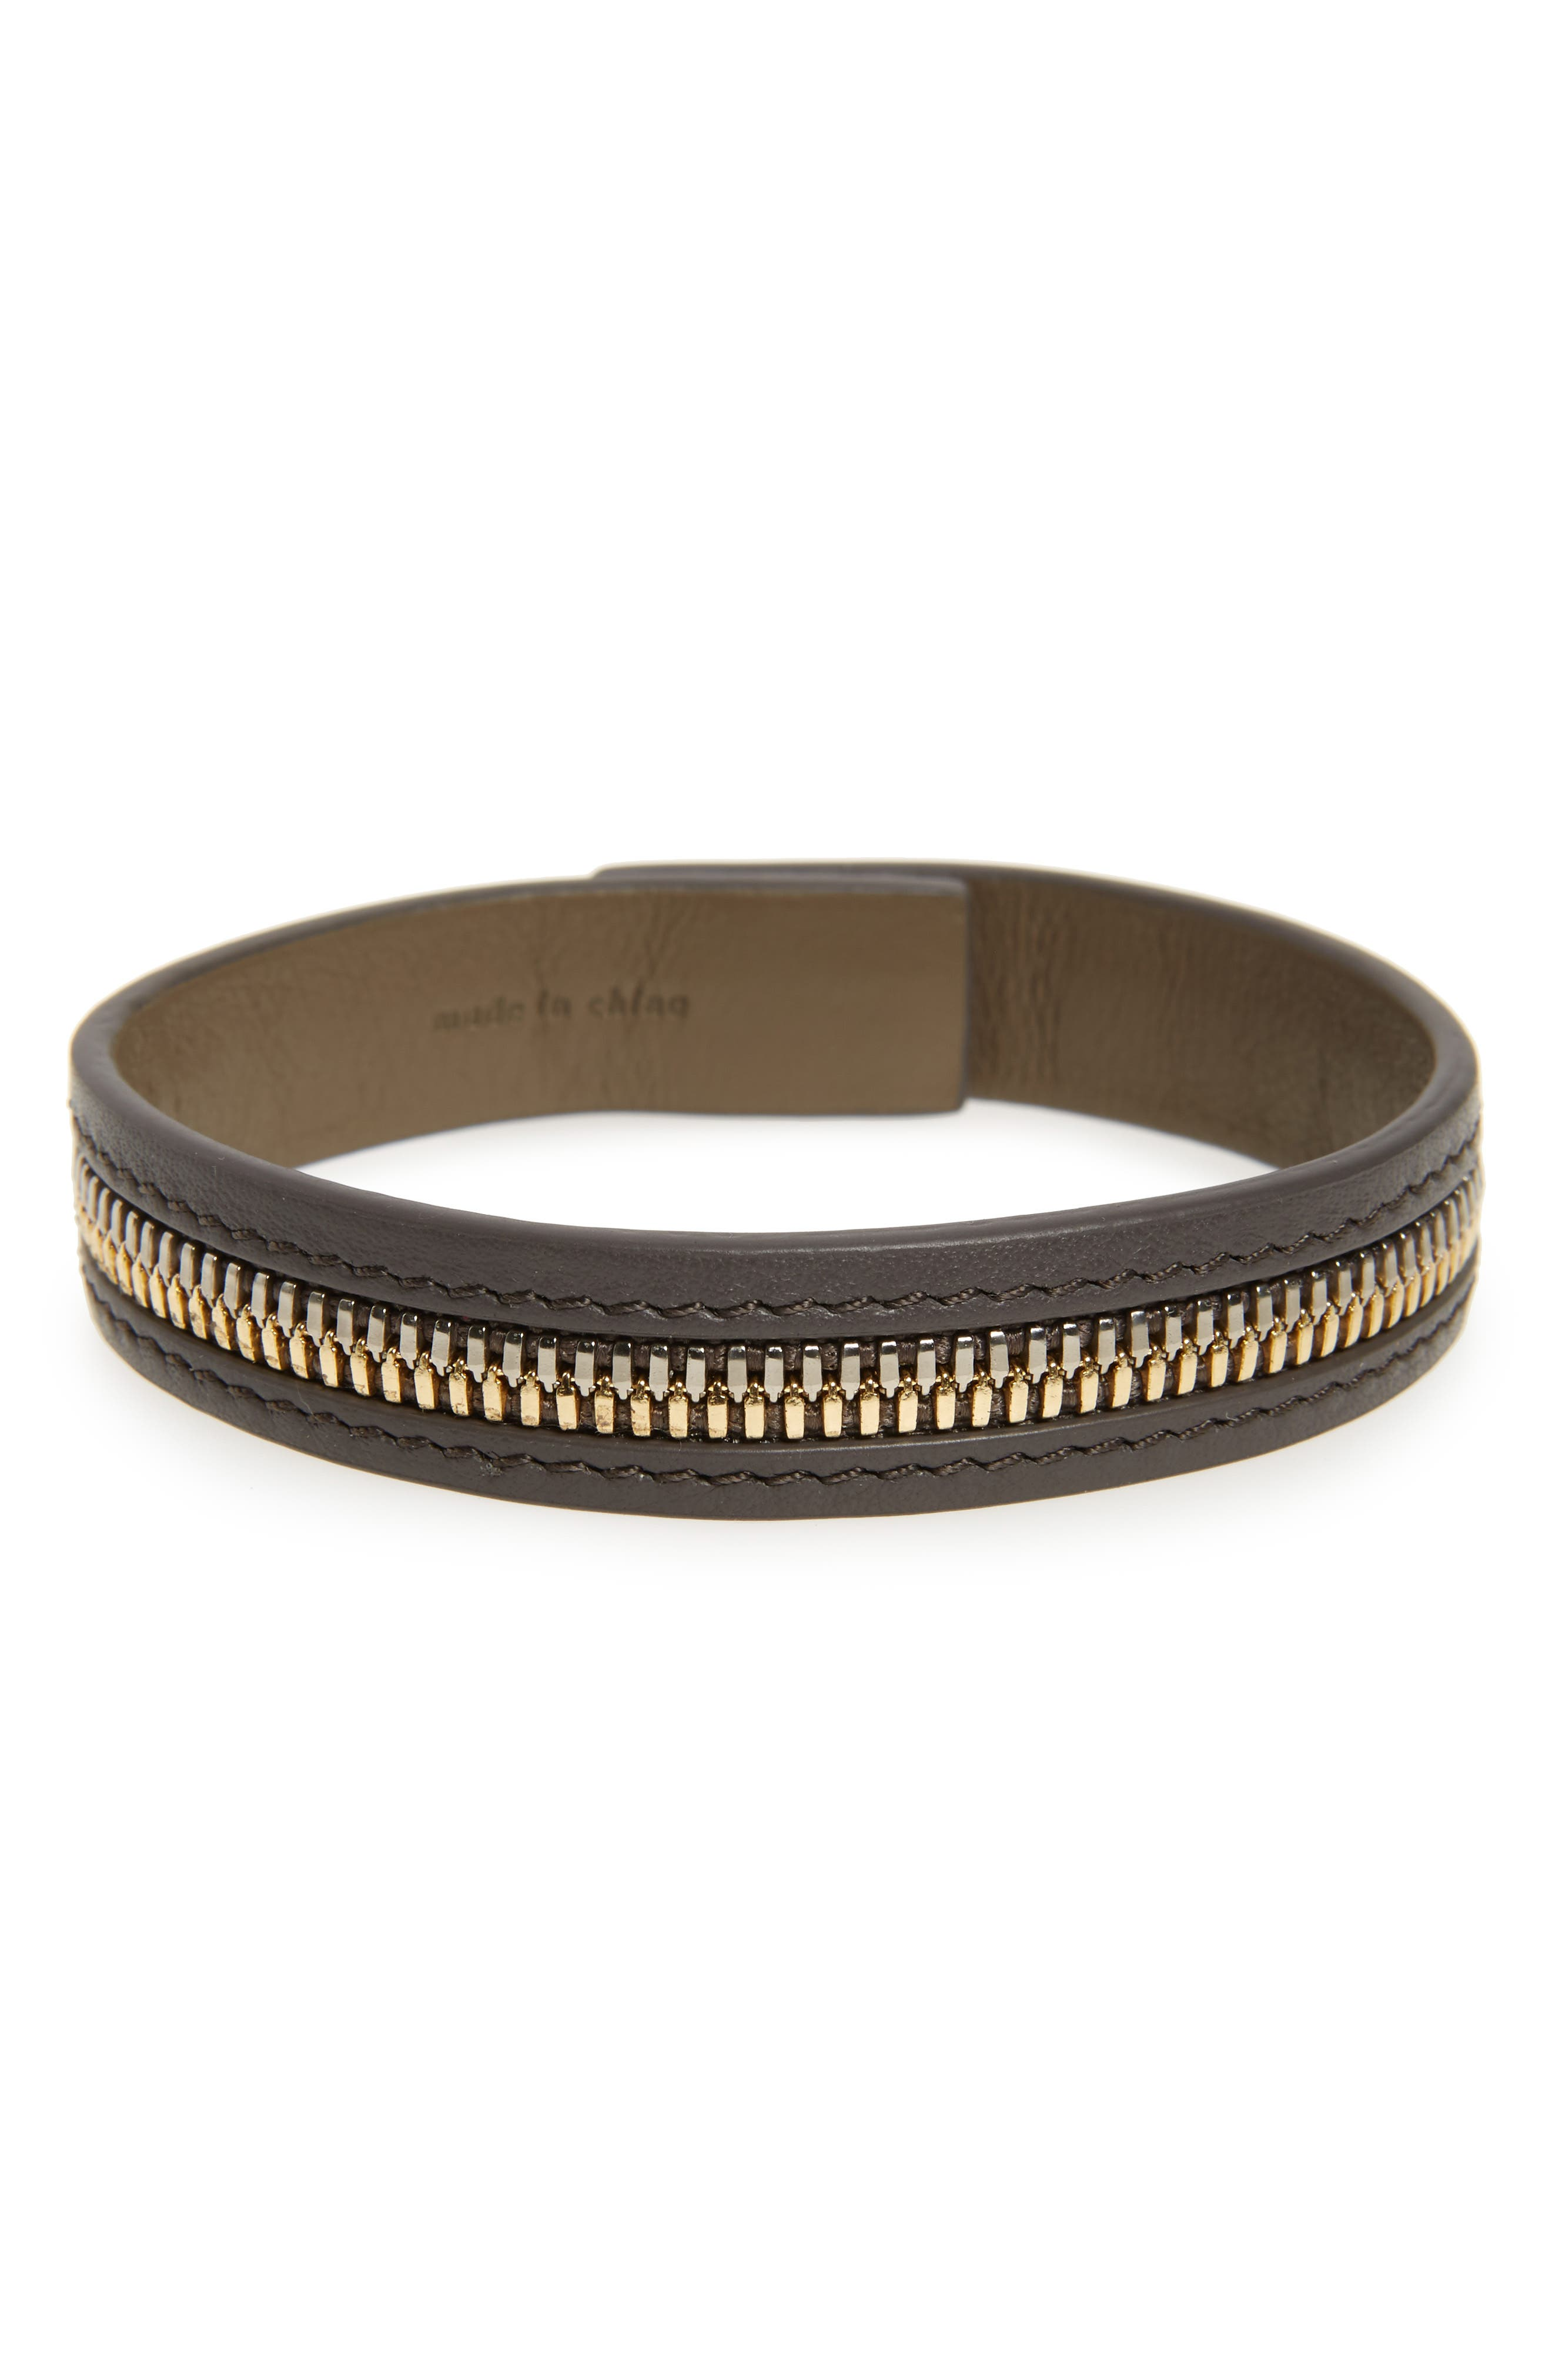 WANT LES ESSENTIELS 'Tambo' Zip Leather Bracelet